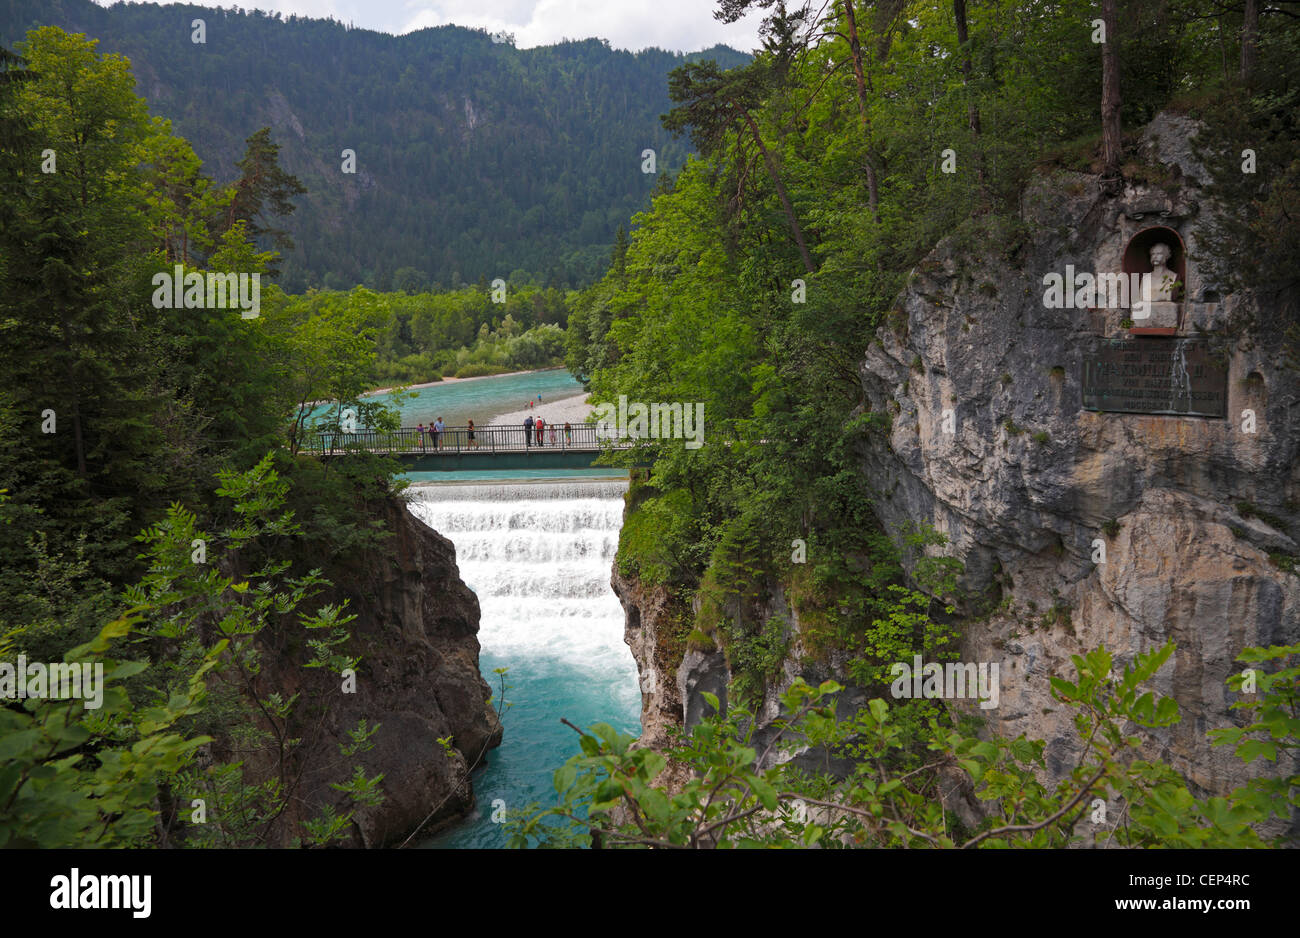 Lechfall and gorge Füssen, Bavaria, Germany. Bust of King Maximilian II of Bavaria in the mountain side. Part - Stock Image